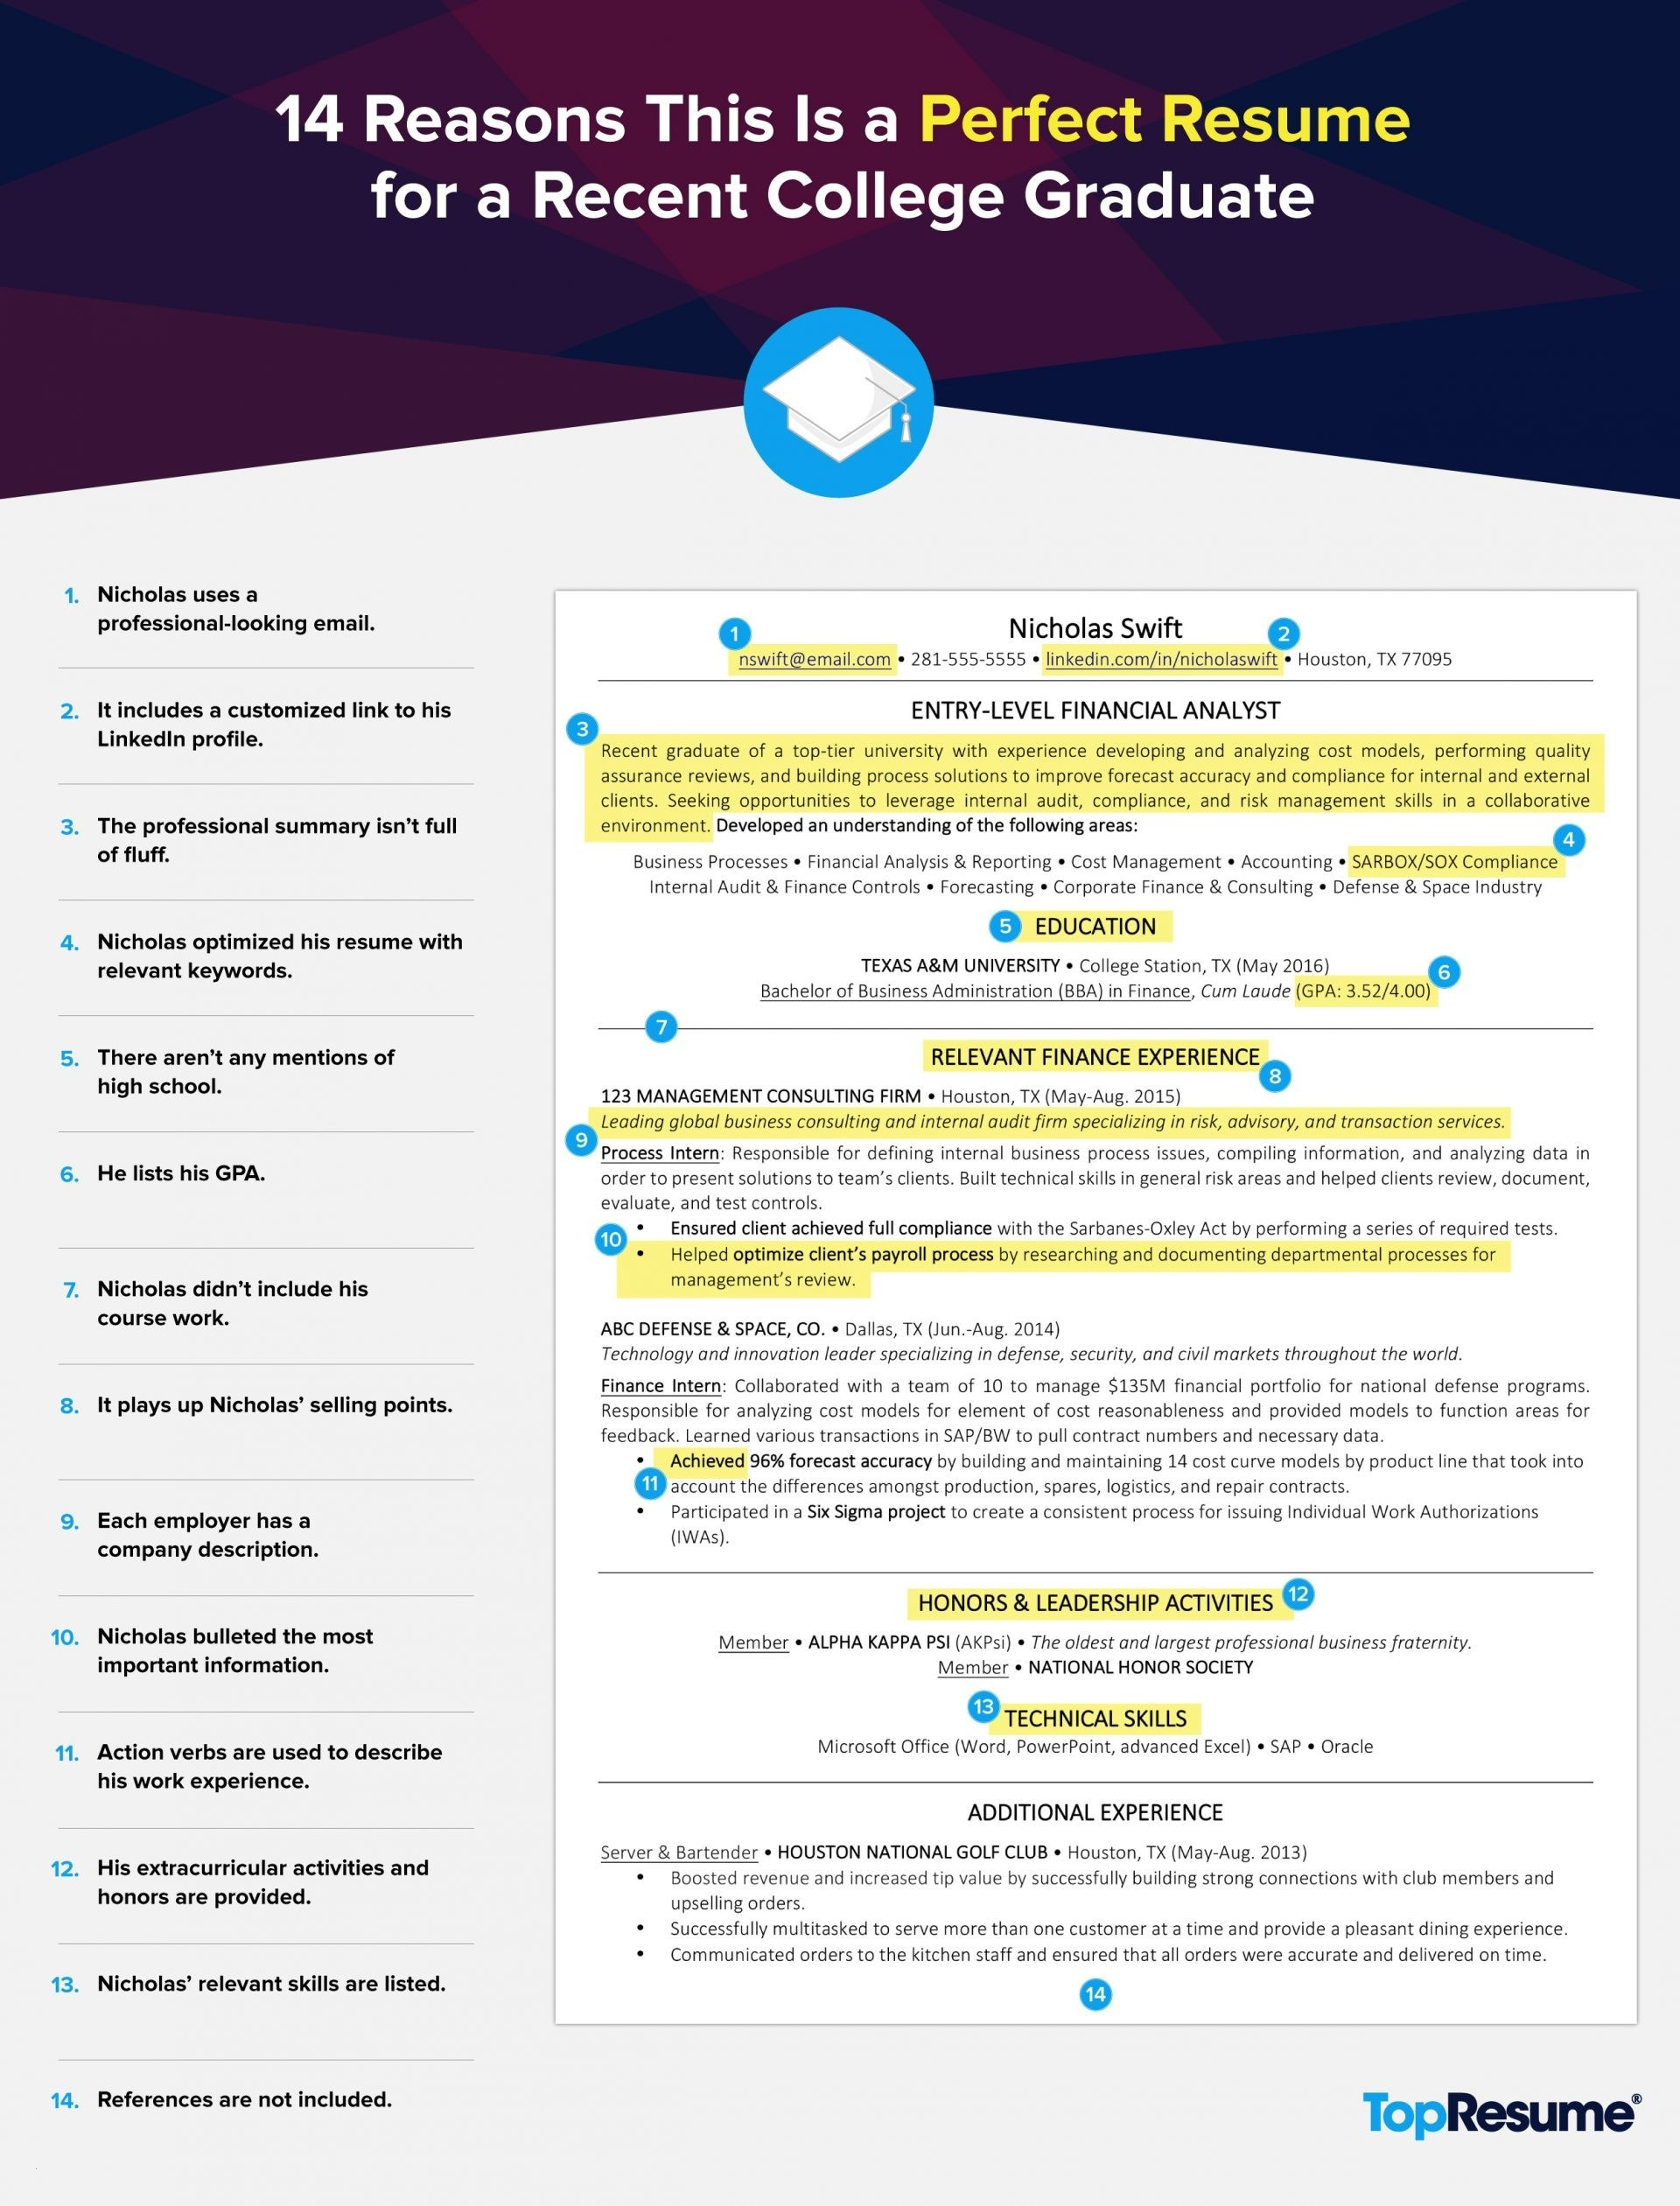 Recent College Graduate Resume - Recent College Grad Resume Template Awesome Awesome Cover Letter and